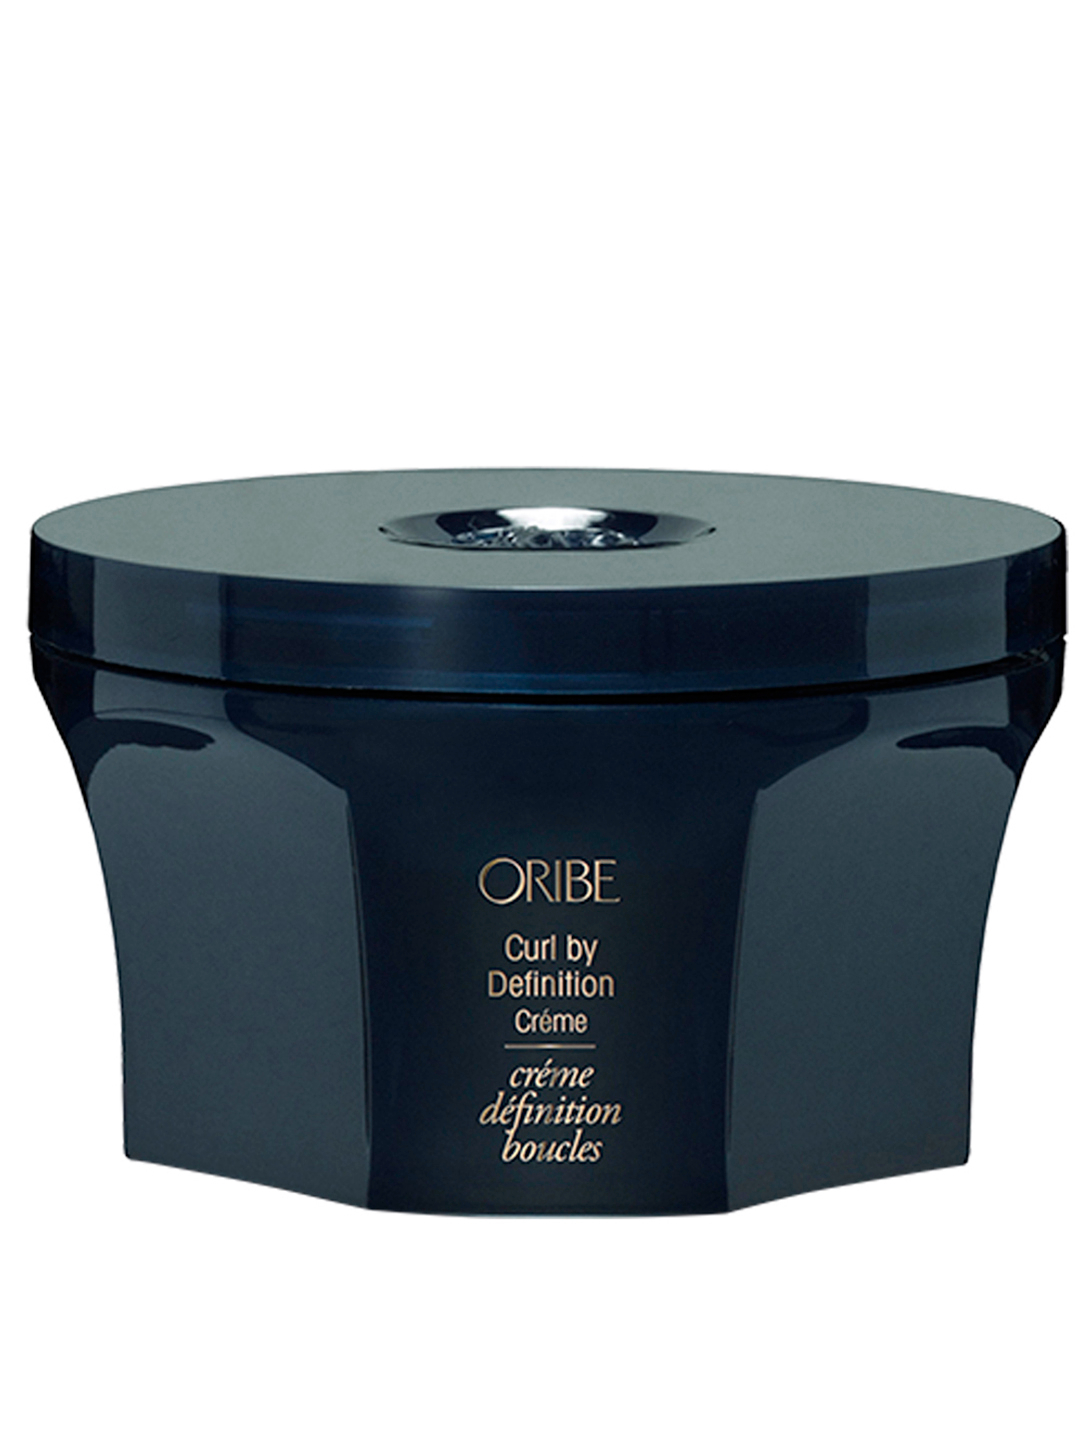 ORIBE Curl by Definition Beauty